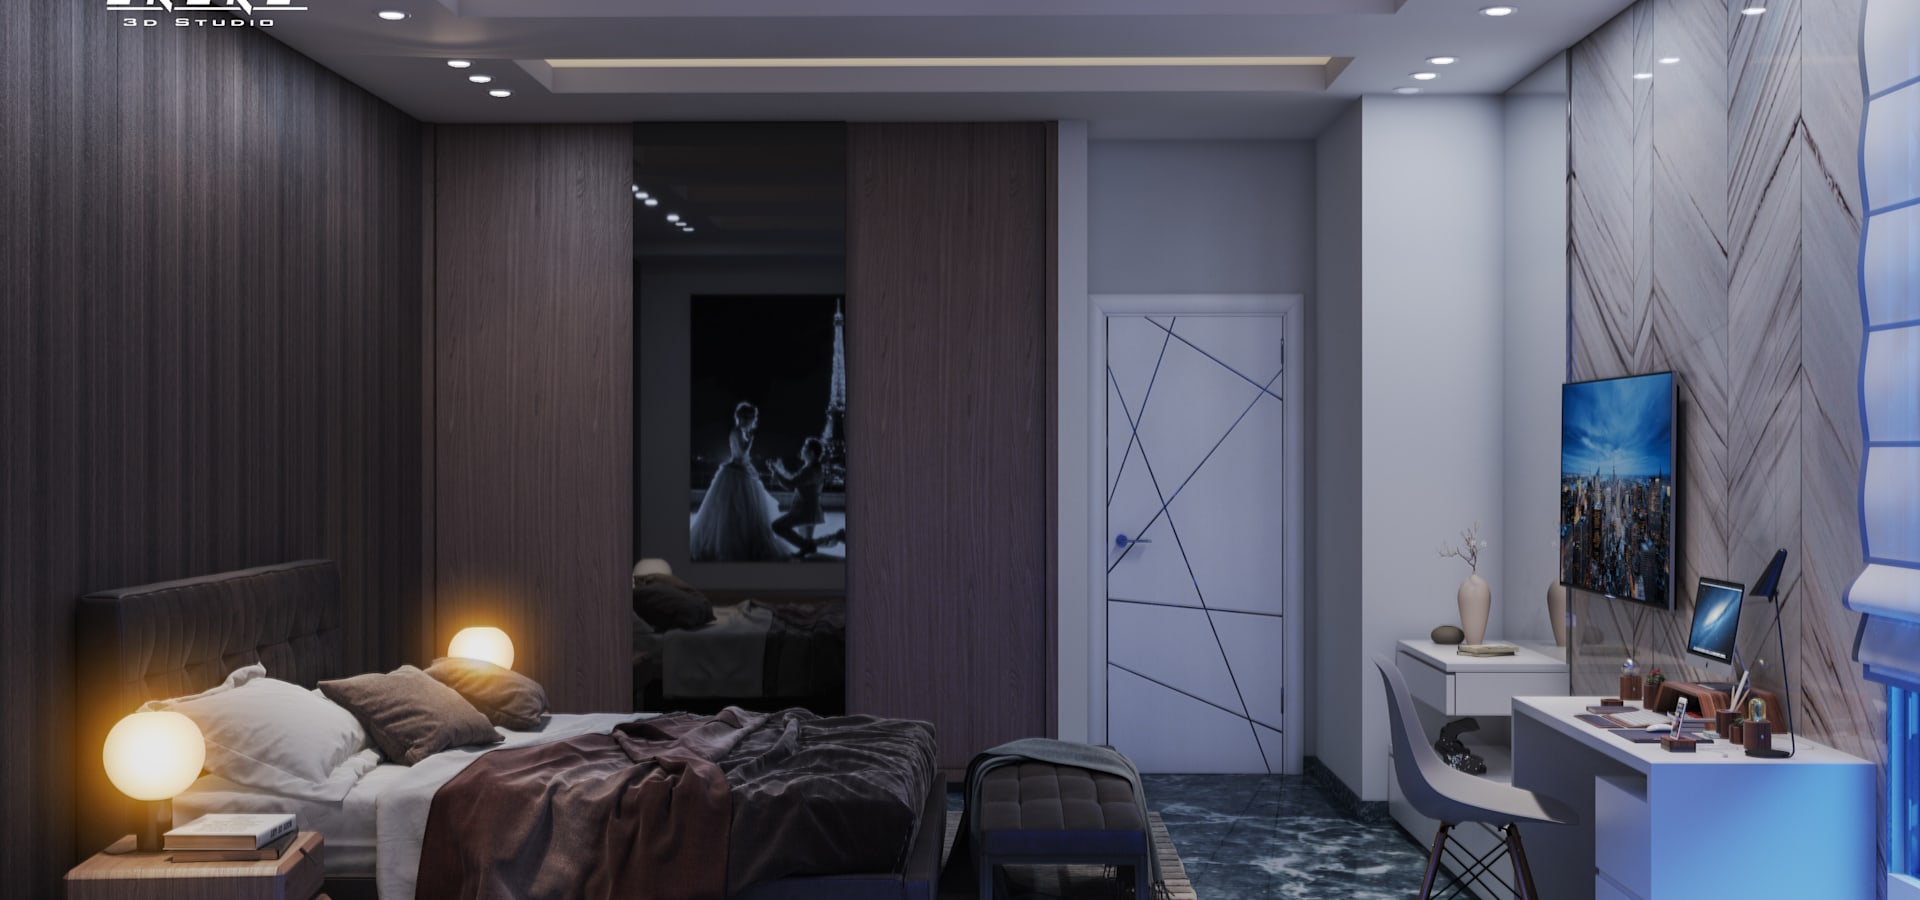 Dkore 3d Studio Interior Designers Decorators In Pune Maharashtra India Homify